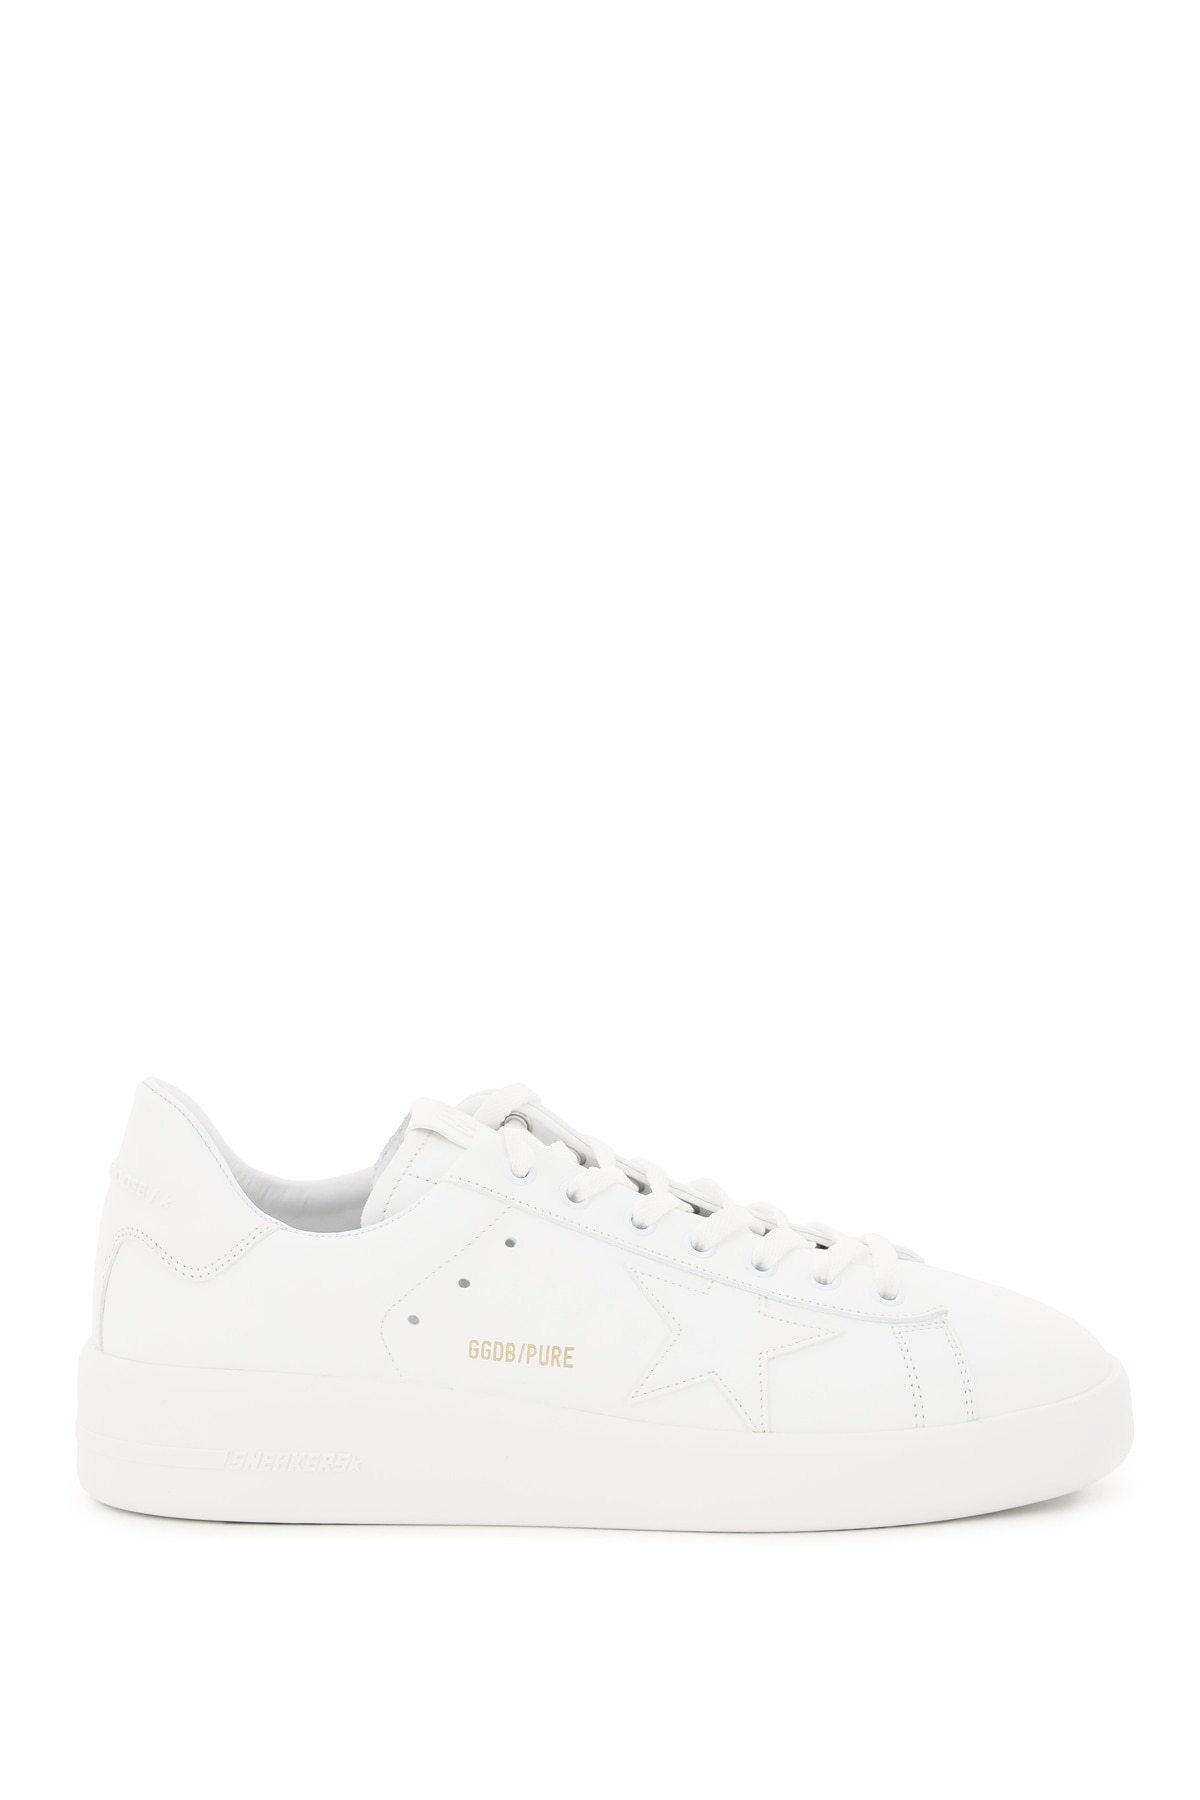 GOLDEN GOOSE PURE NEW SNEAKERS 42 White Leather